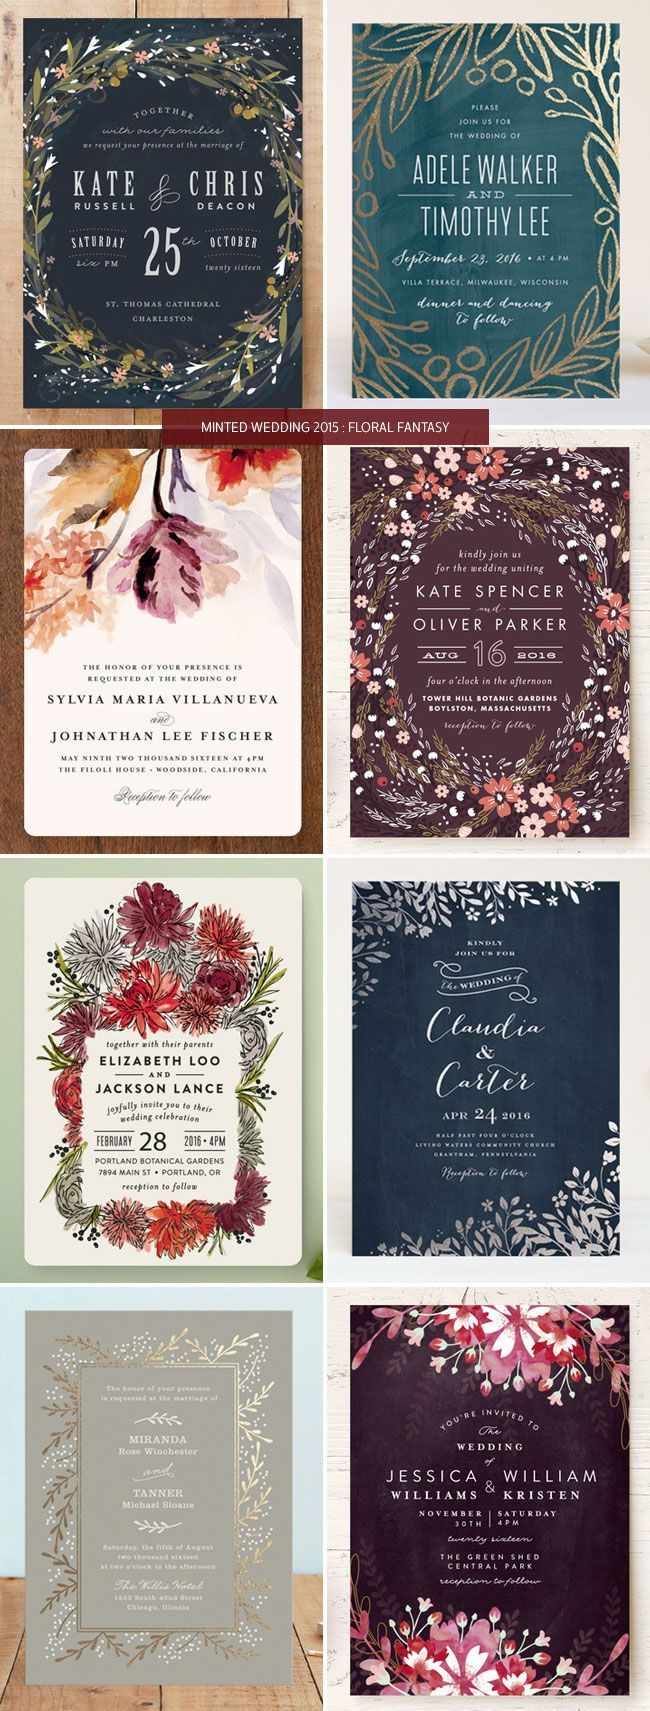 Minted Wedding Invitations 2015 Floral Fantasy